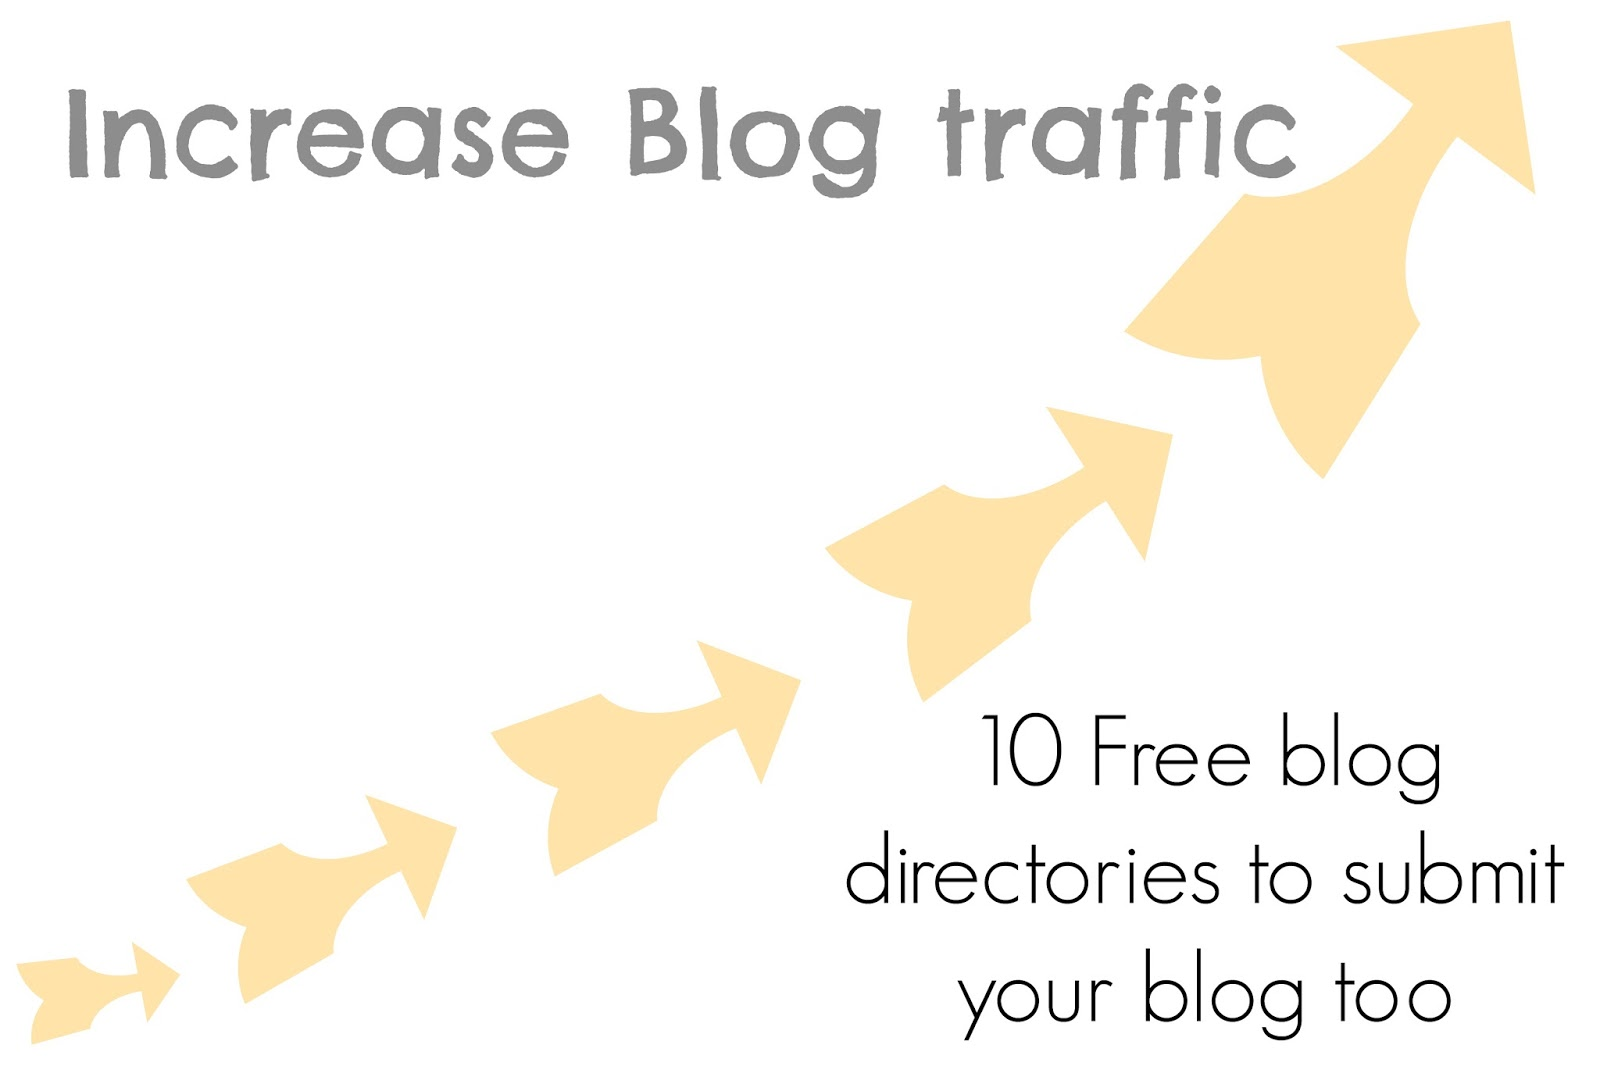 10 Free blog directories to submit your blog too